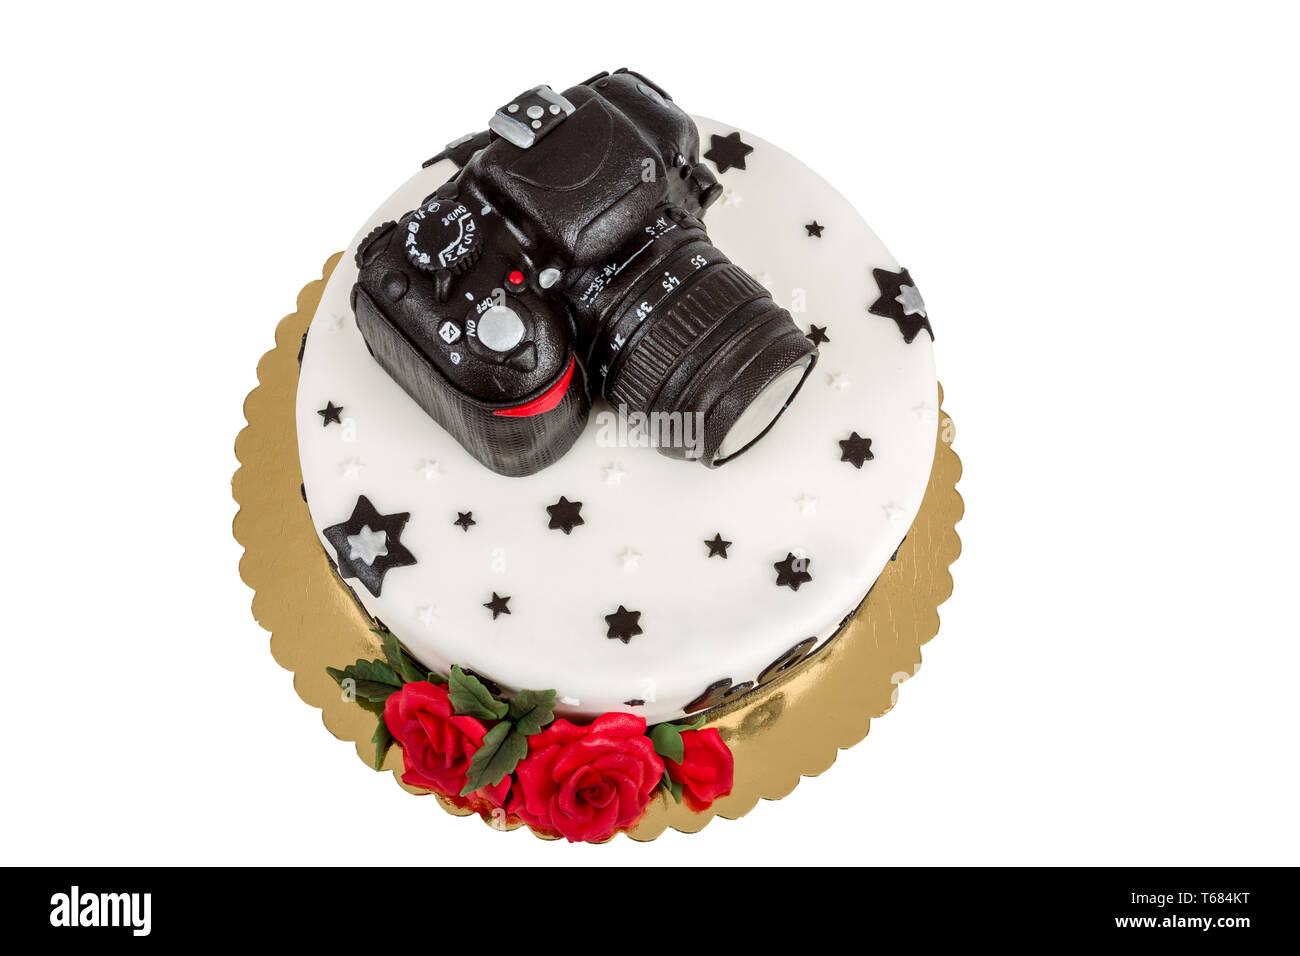 Excellent Birthday Cake For Forty Anniversary With Modern Dslr Photo Camera Personalised Birthday Cards Vishlily Jamesorg